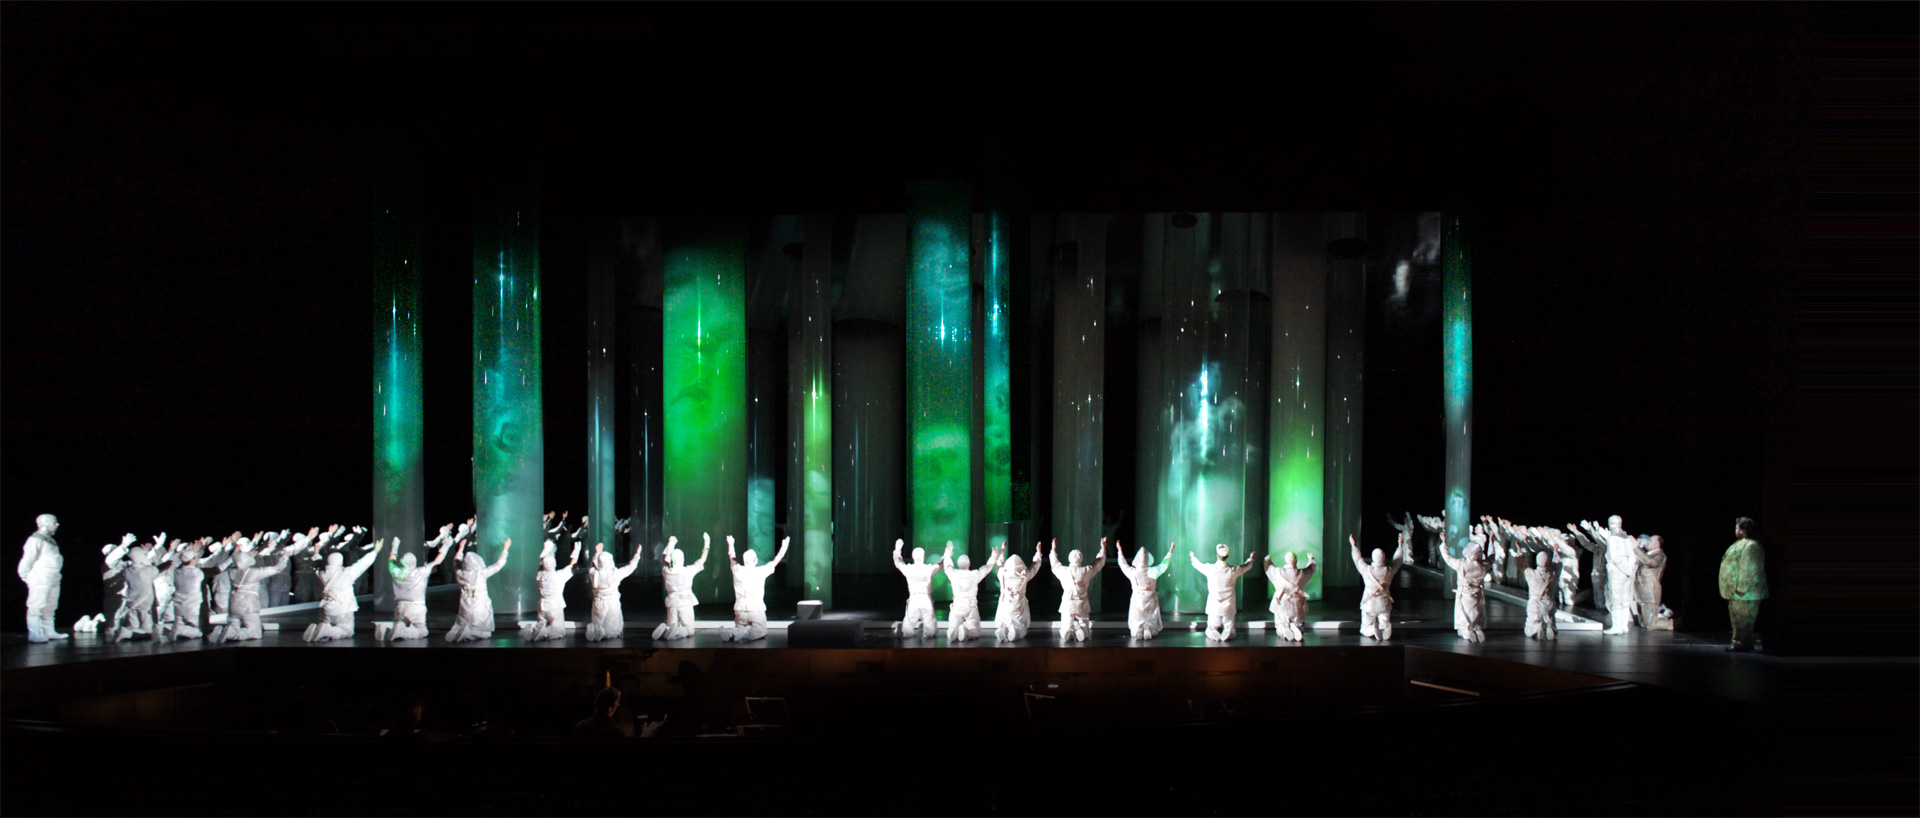 parsifal_IMG_1420_E_cropped.jpg